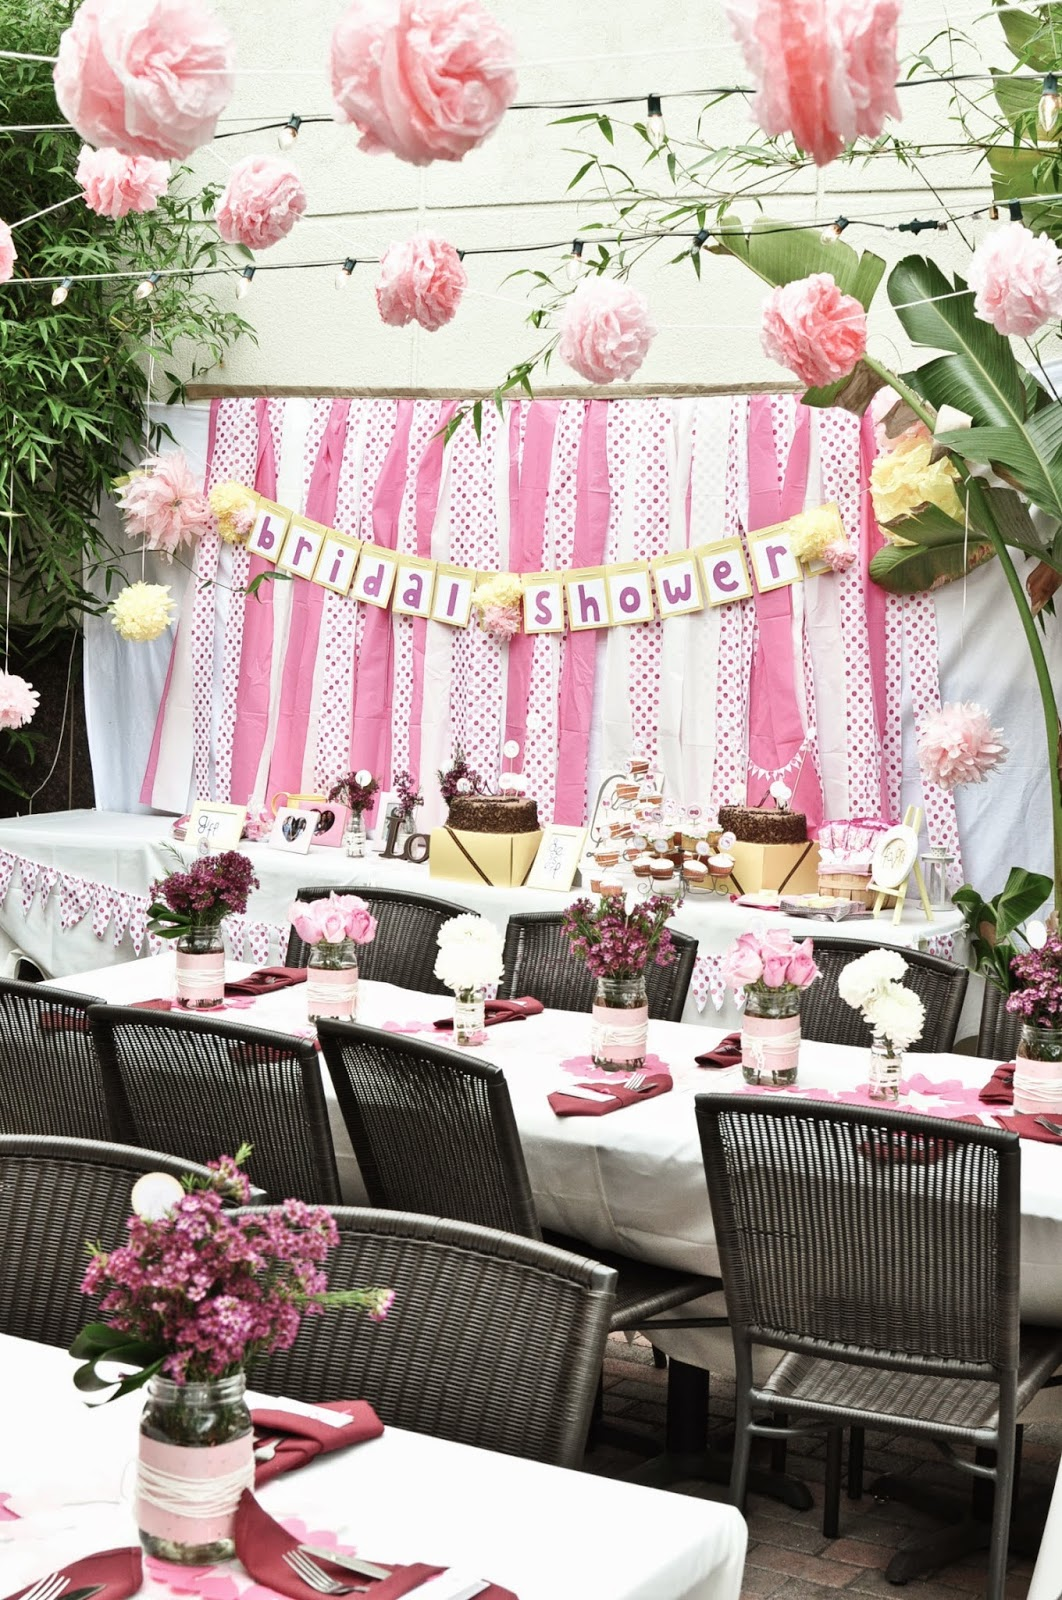 Charming Outdoor Wedding Shower Ideas Part - 7: Photo Credit: Pixgood.com